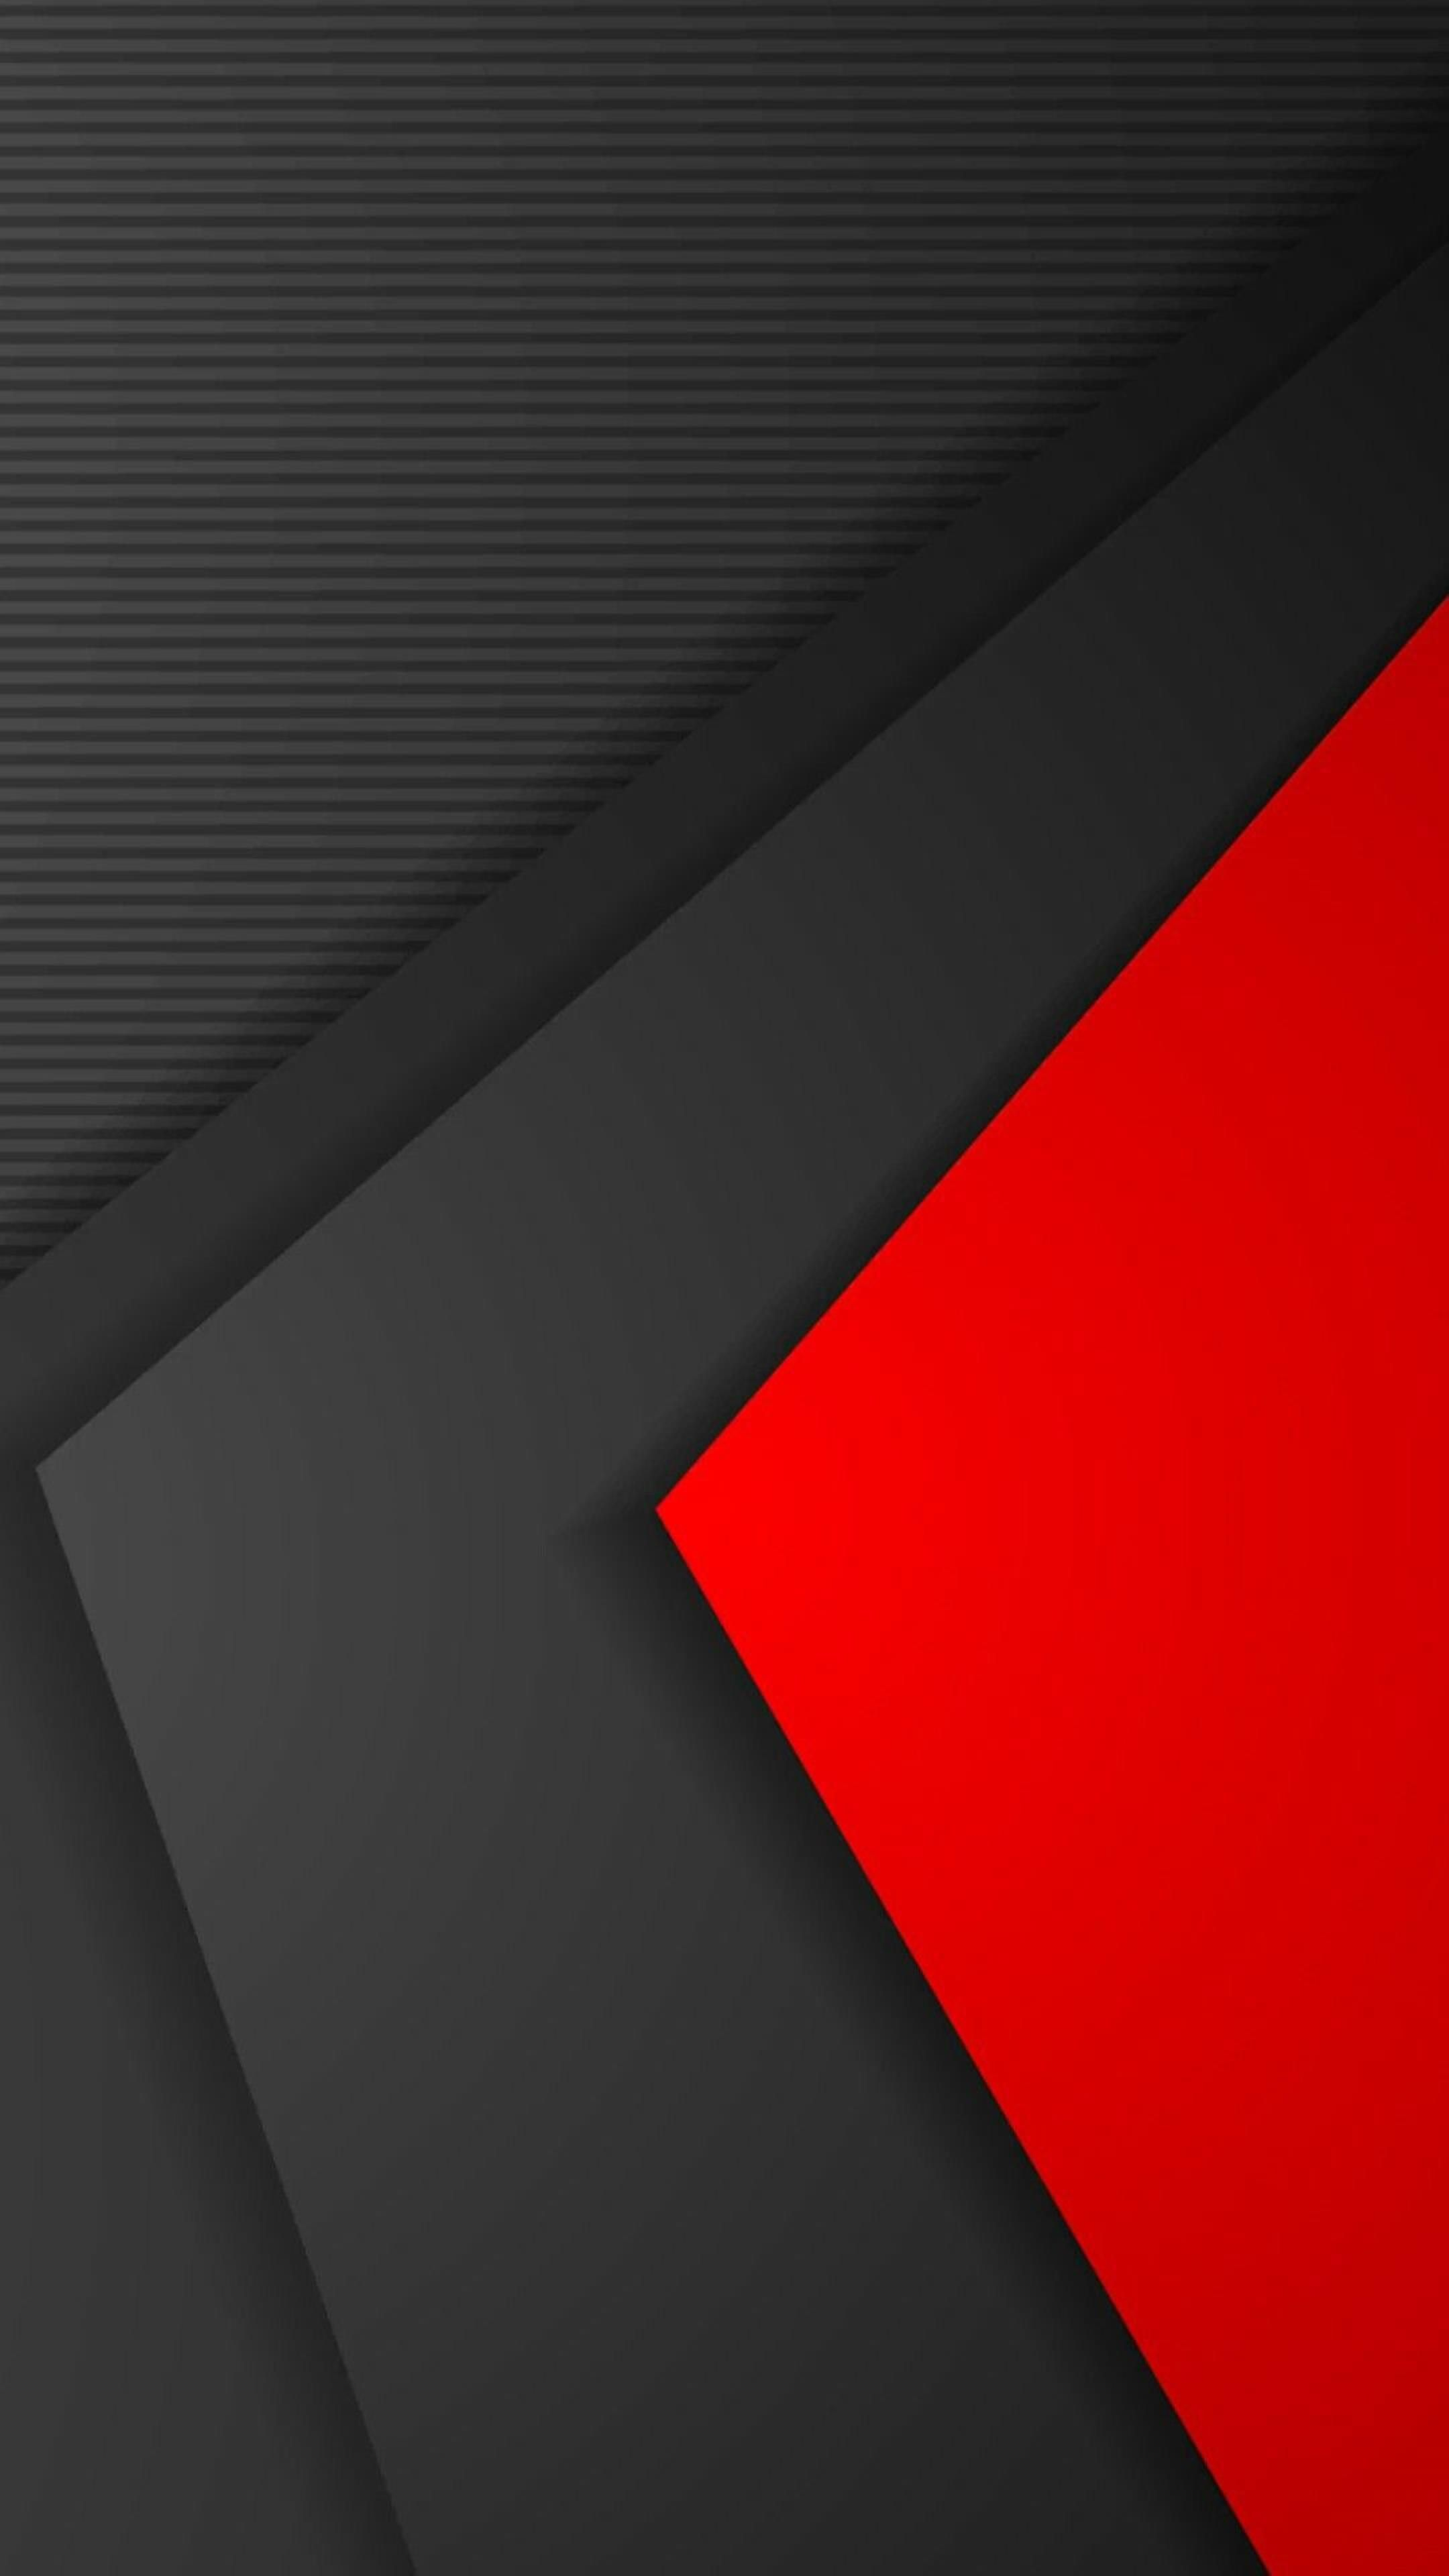 Http Www Vactualpapers Com Gallery Red And Black Material Design Mobile Hd Wallpaper Red And Black Wallpaper Black Hd Wallpaper Gaming Wallpapers Hd